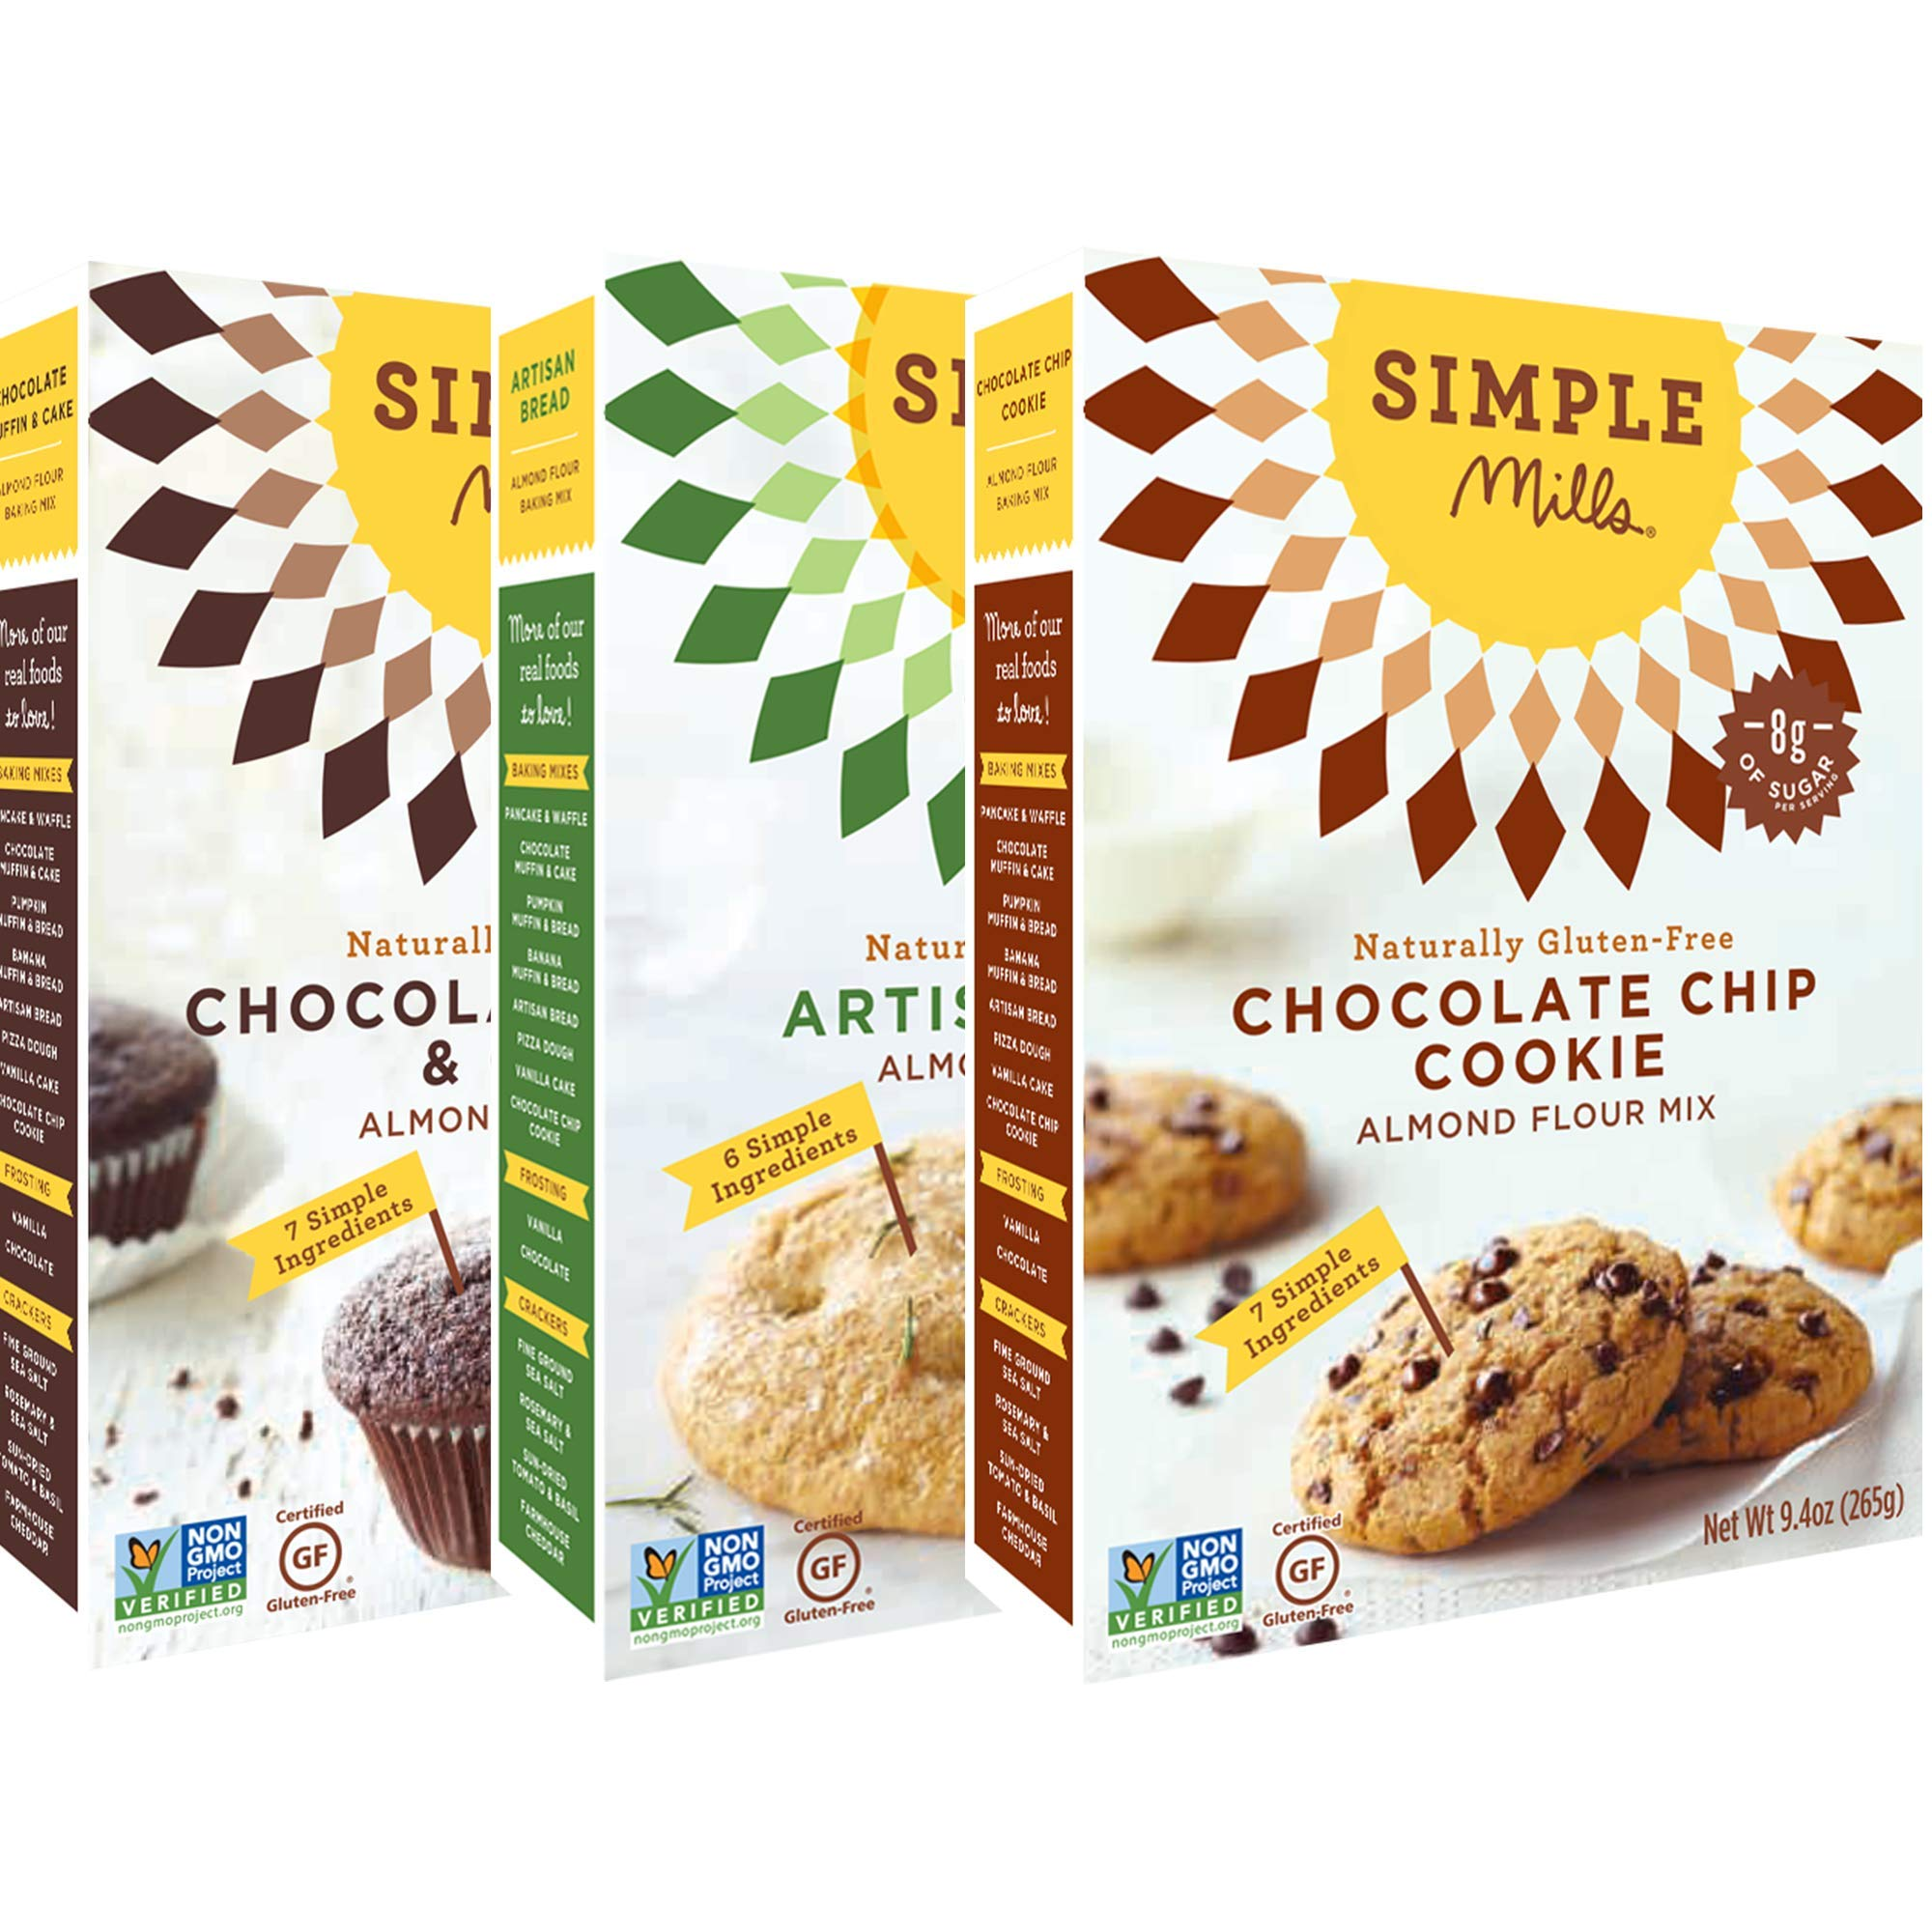 Simple Mills Almond Flour Mix Variety Pack:, (1) Artisan Bread, (1) Chocolate Chip Cookie, (1) Chocolate Muffin & Cake, 3 count by Simple Mills